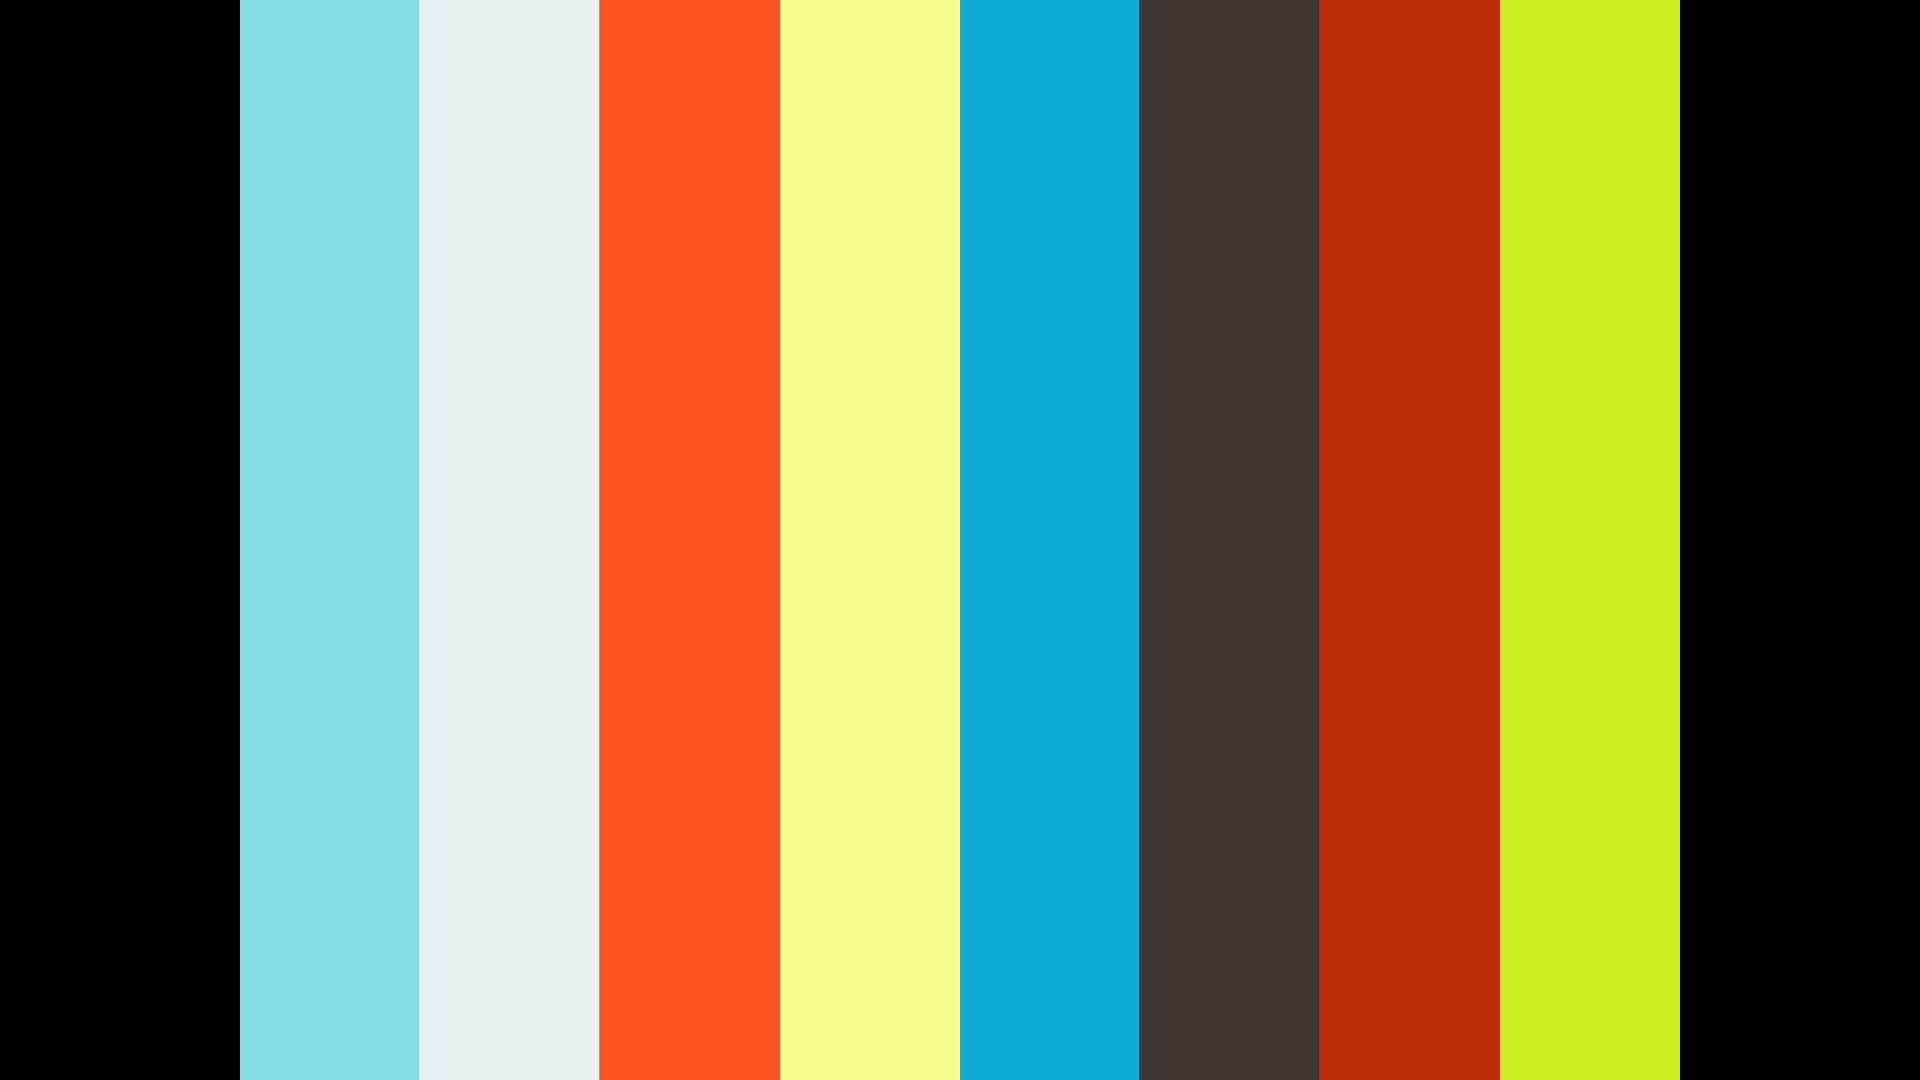 Coping with COVID-19: Box Breathing Exercise